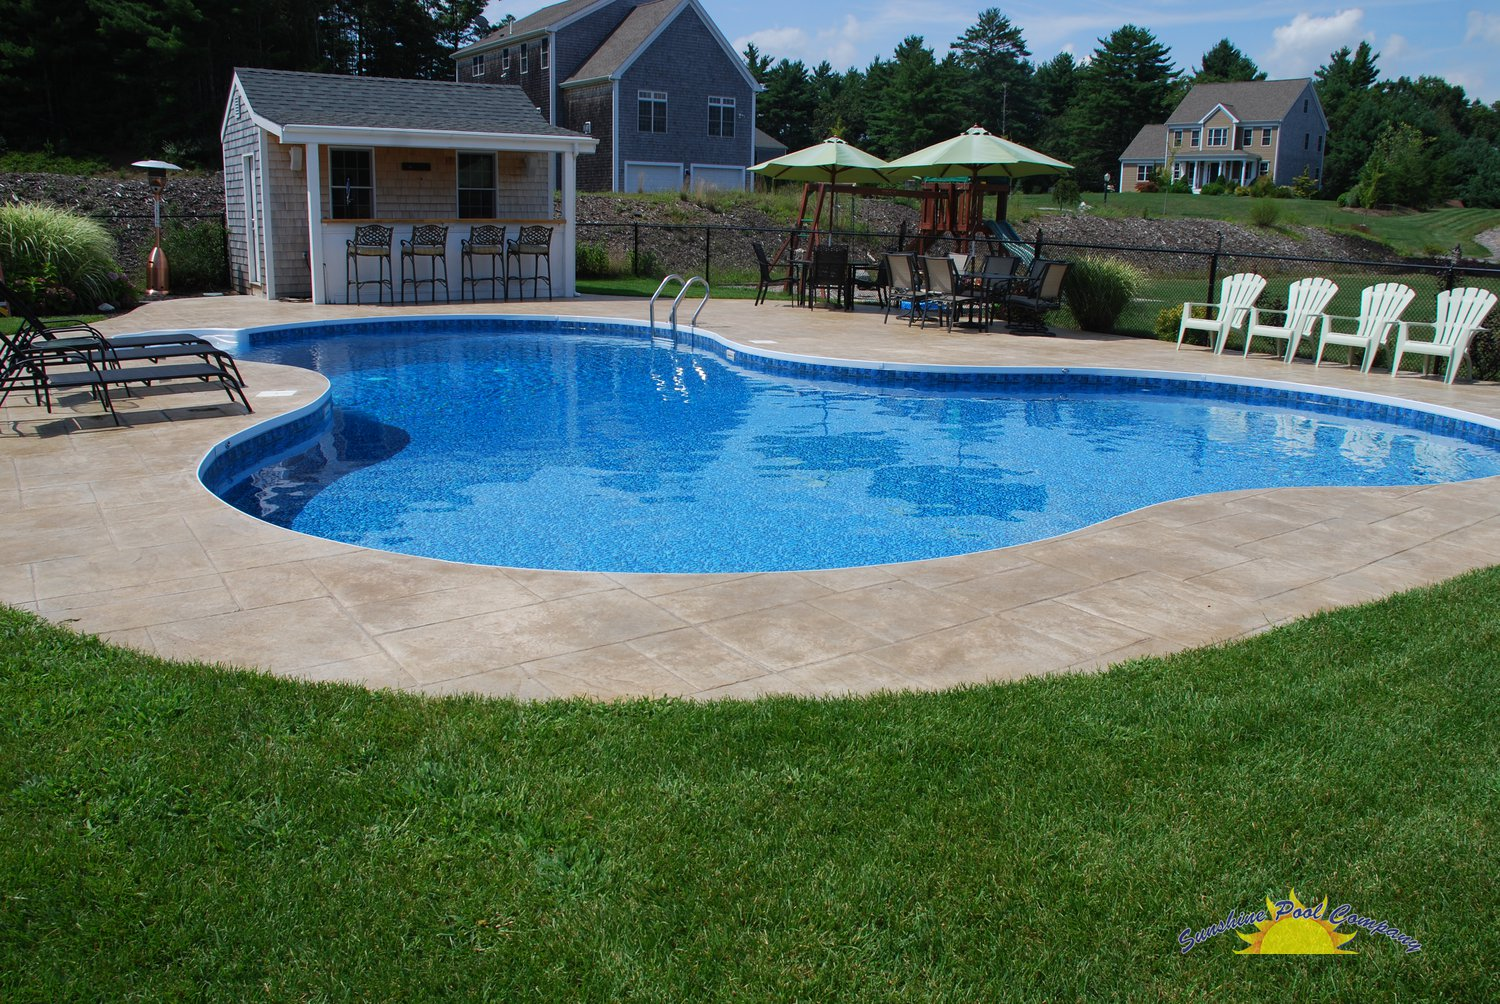 27 simple pictures of inground pools inspiration images for Images of inground swimming pools